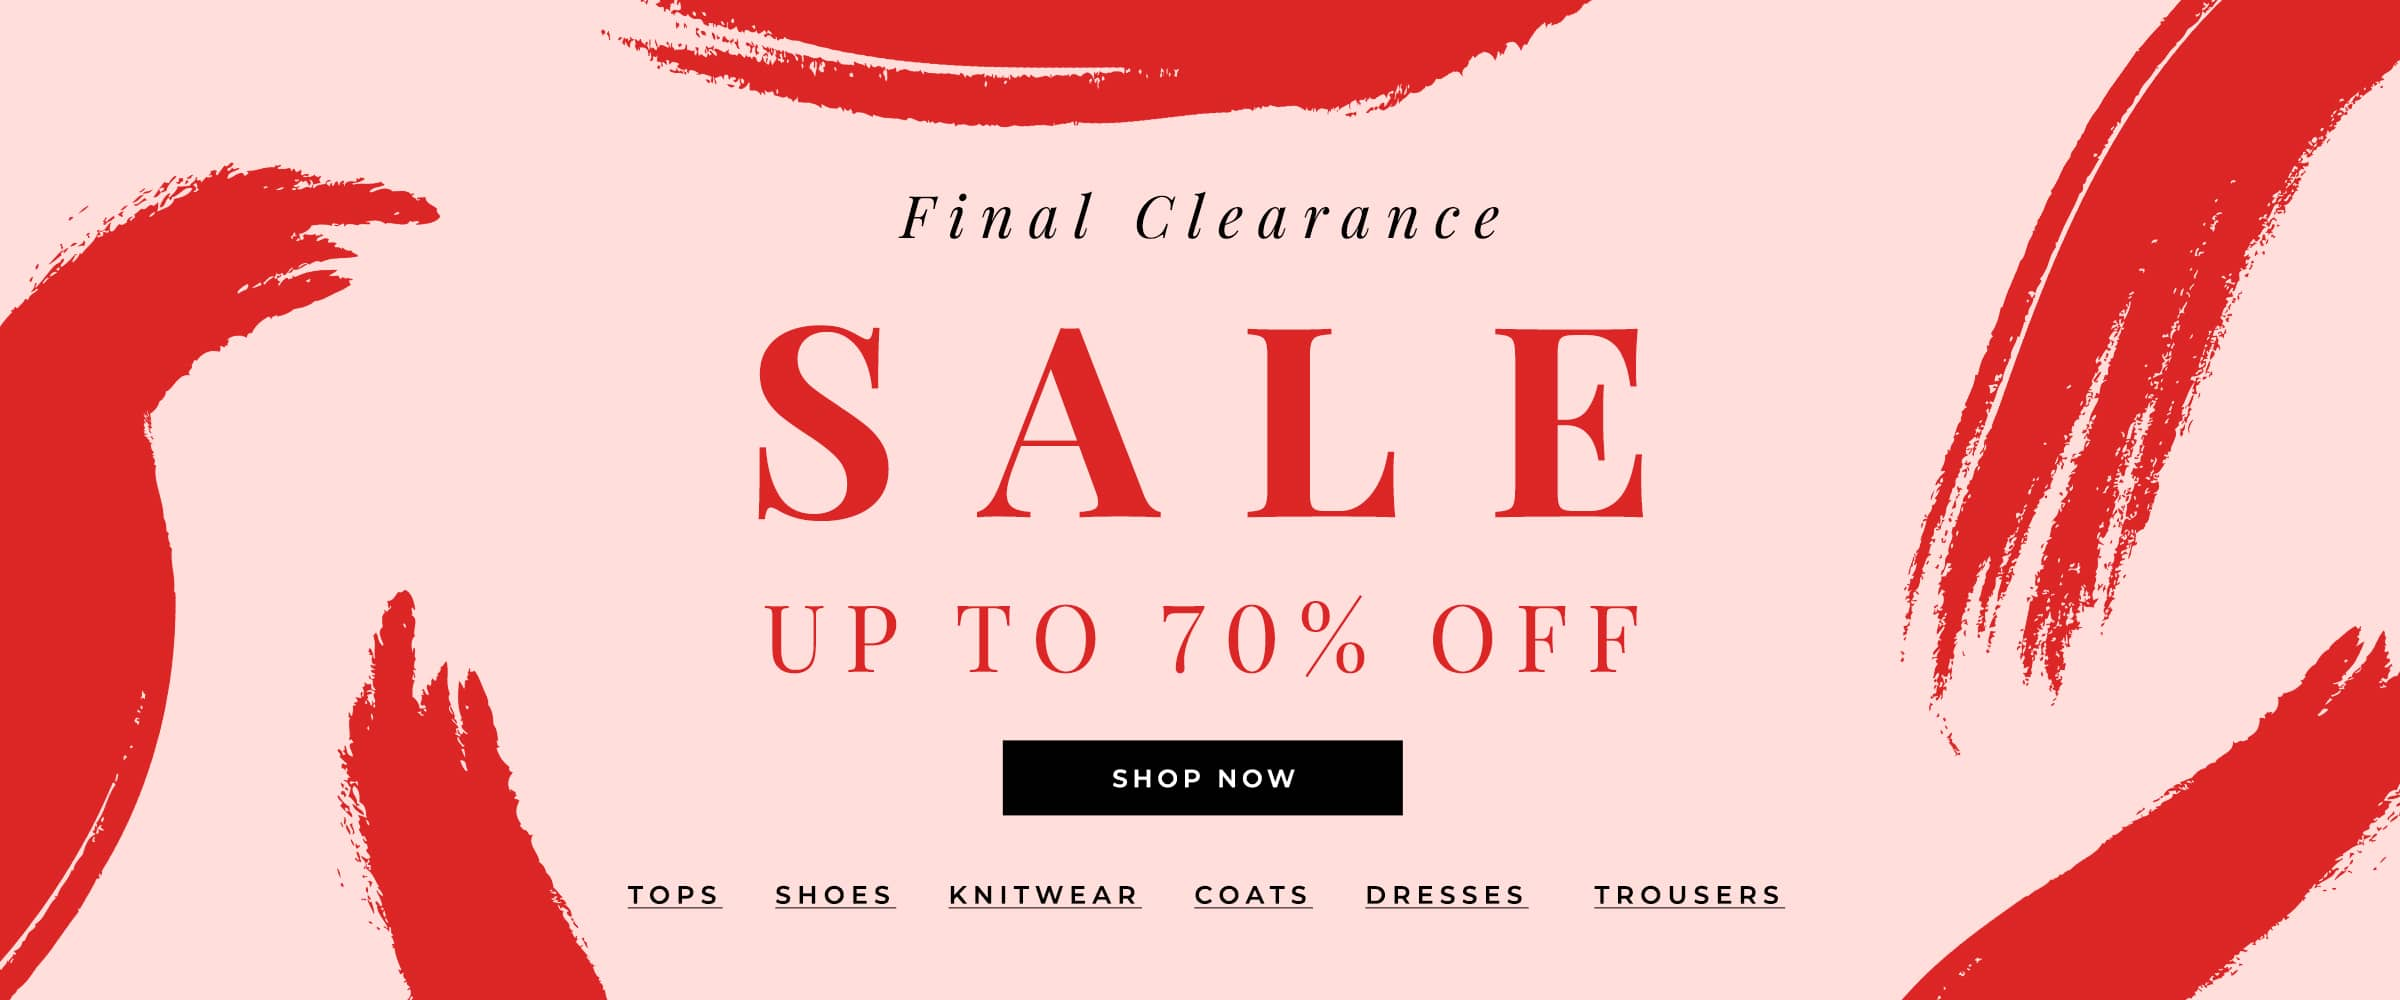 Evans Clothing: Final Clearance Sale up to 70% off plus size clothing